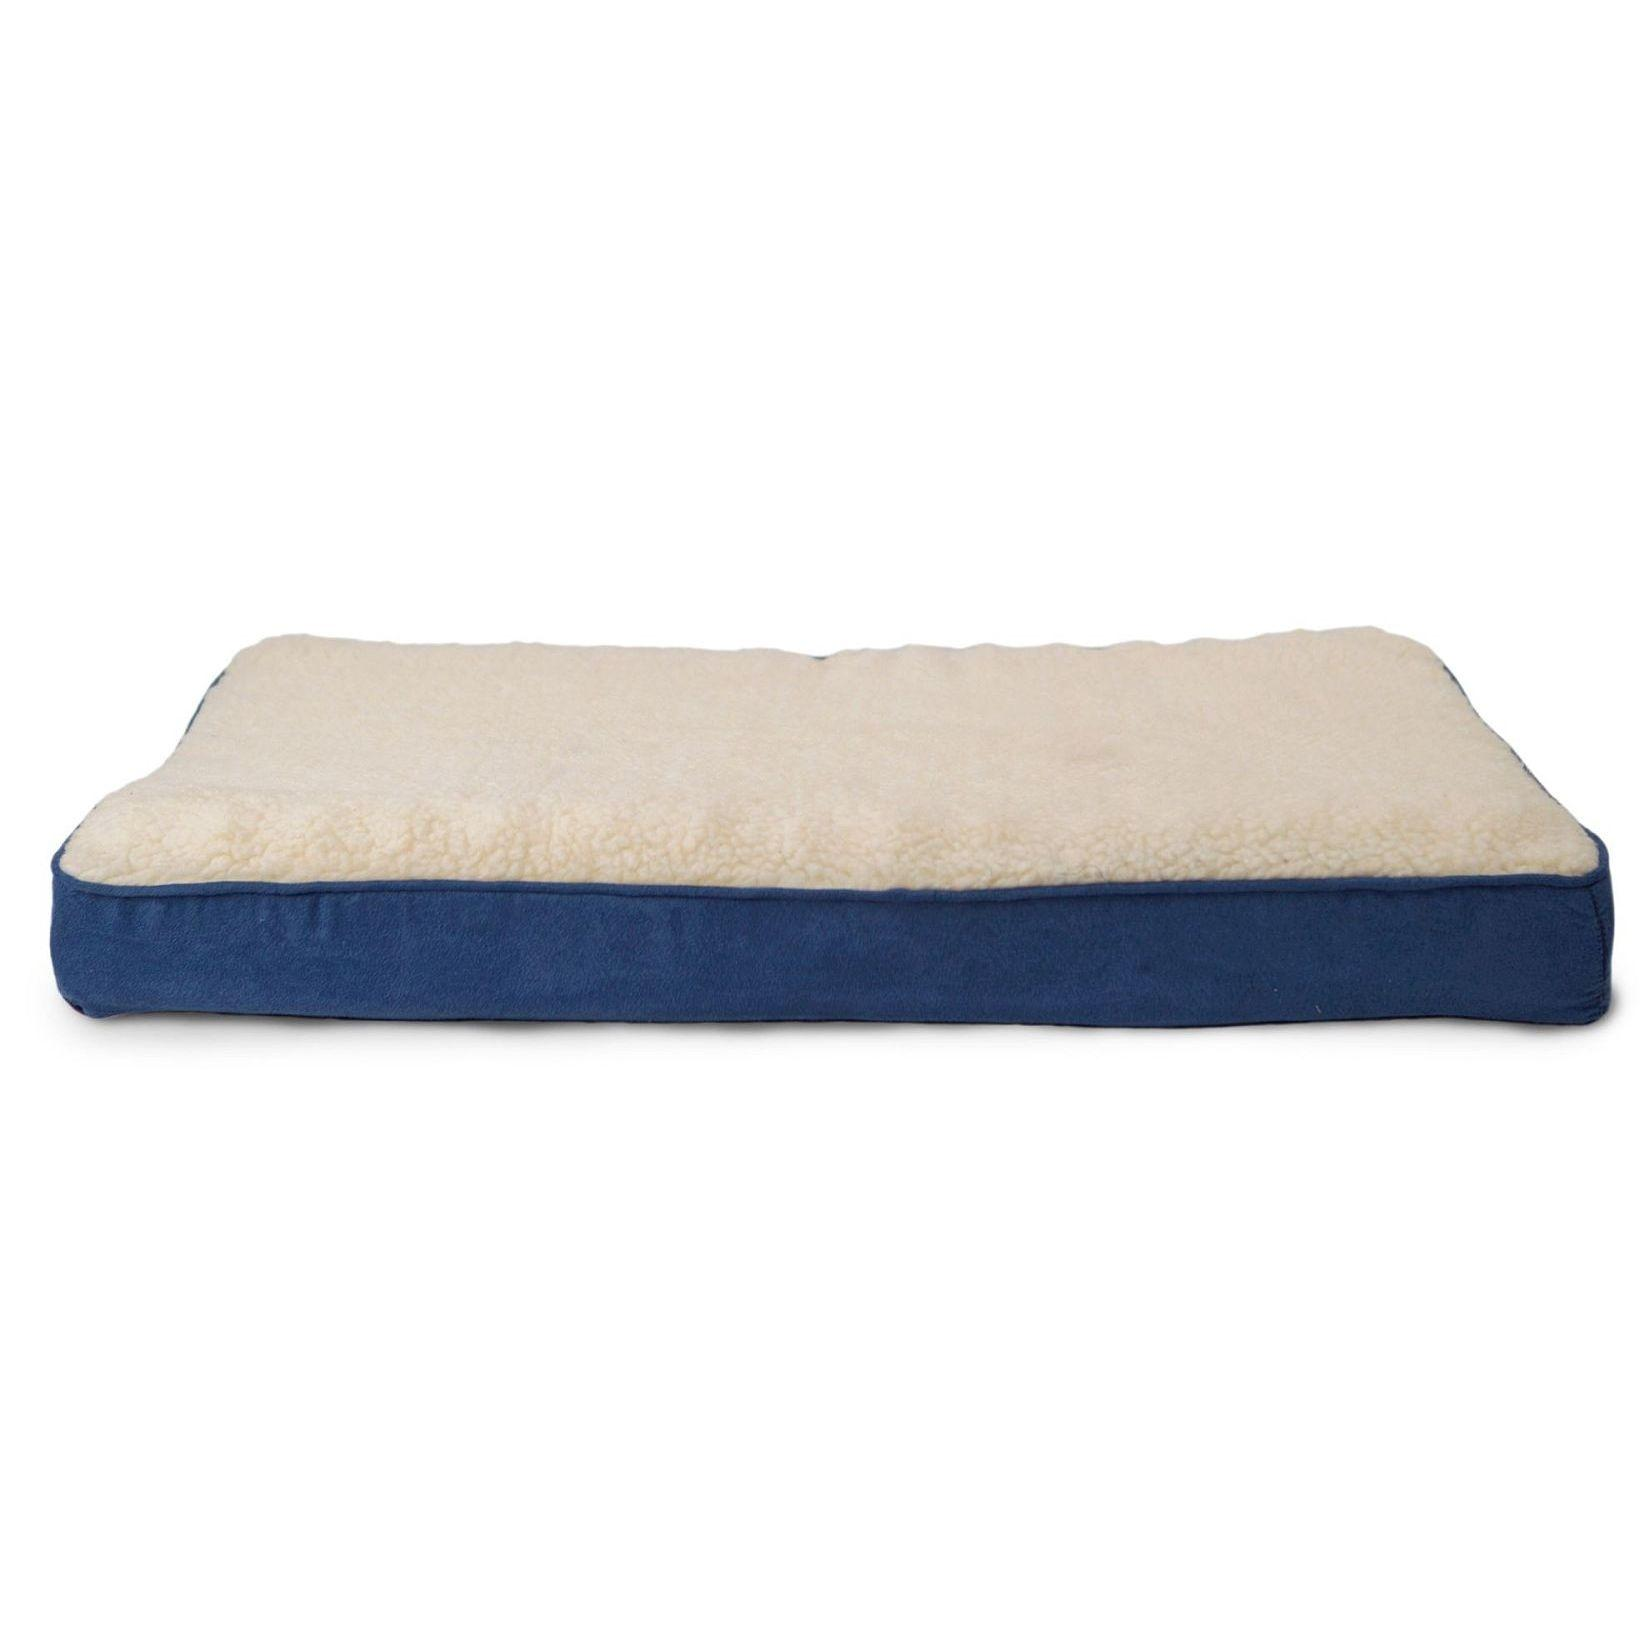 FurHaven Faux Sheepskin & Suede Deluxe Orthopedic Pet Bed - Navy